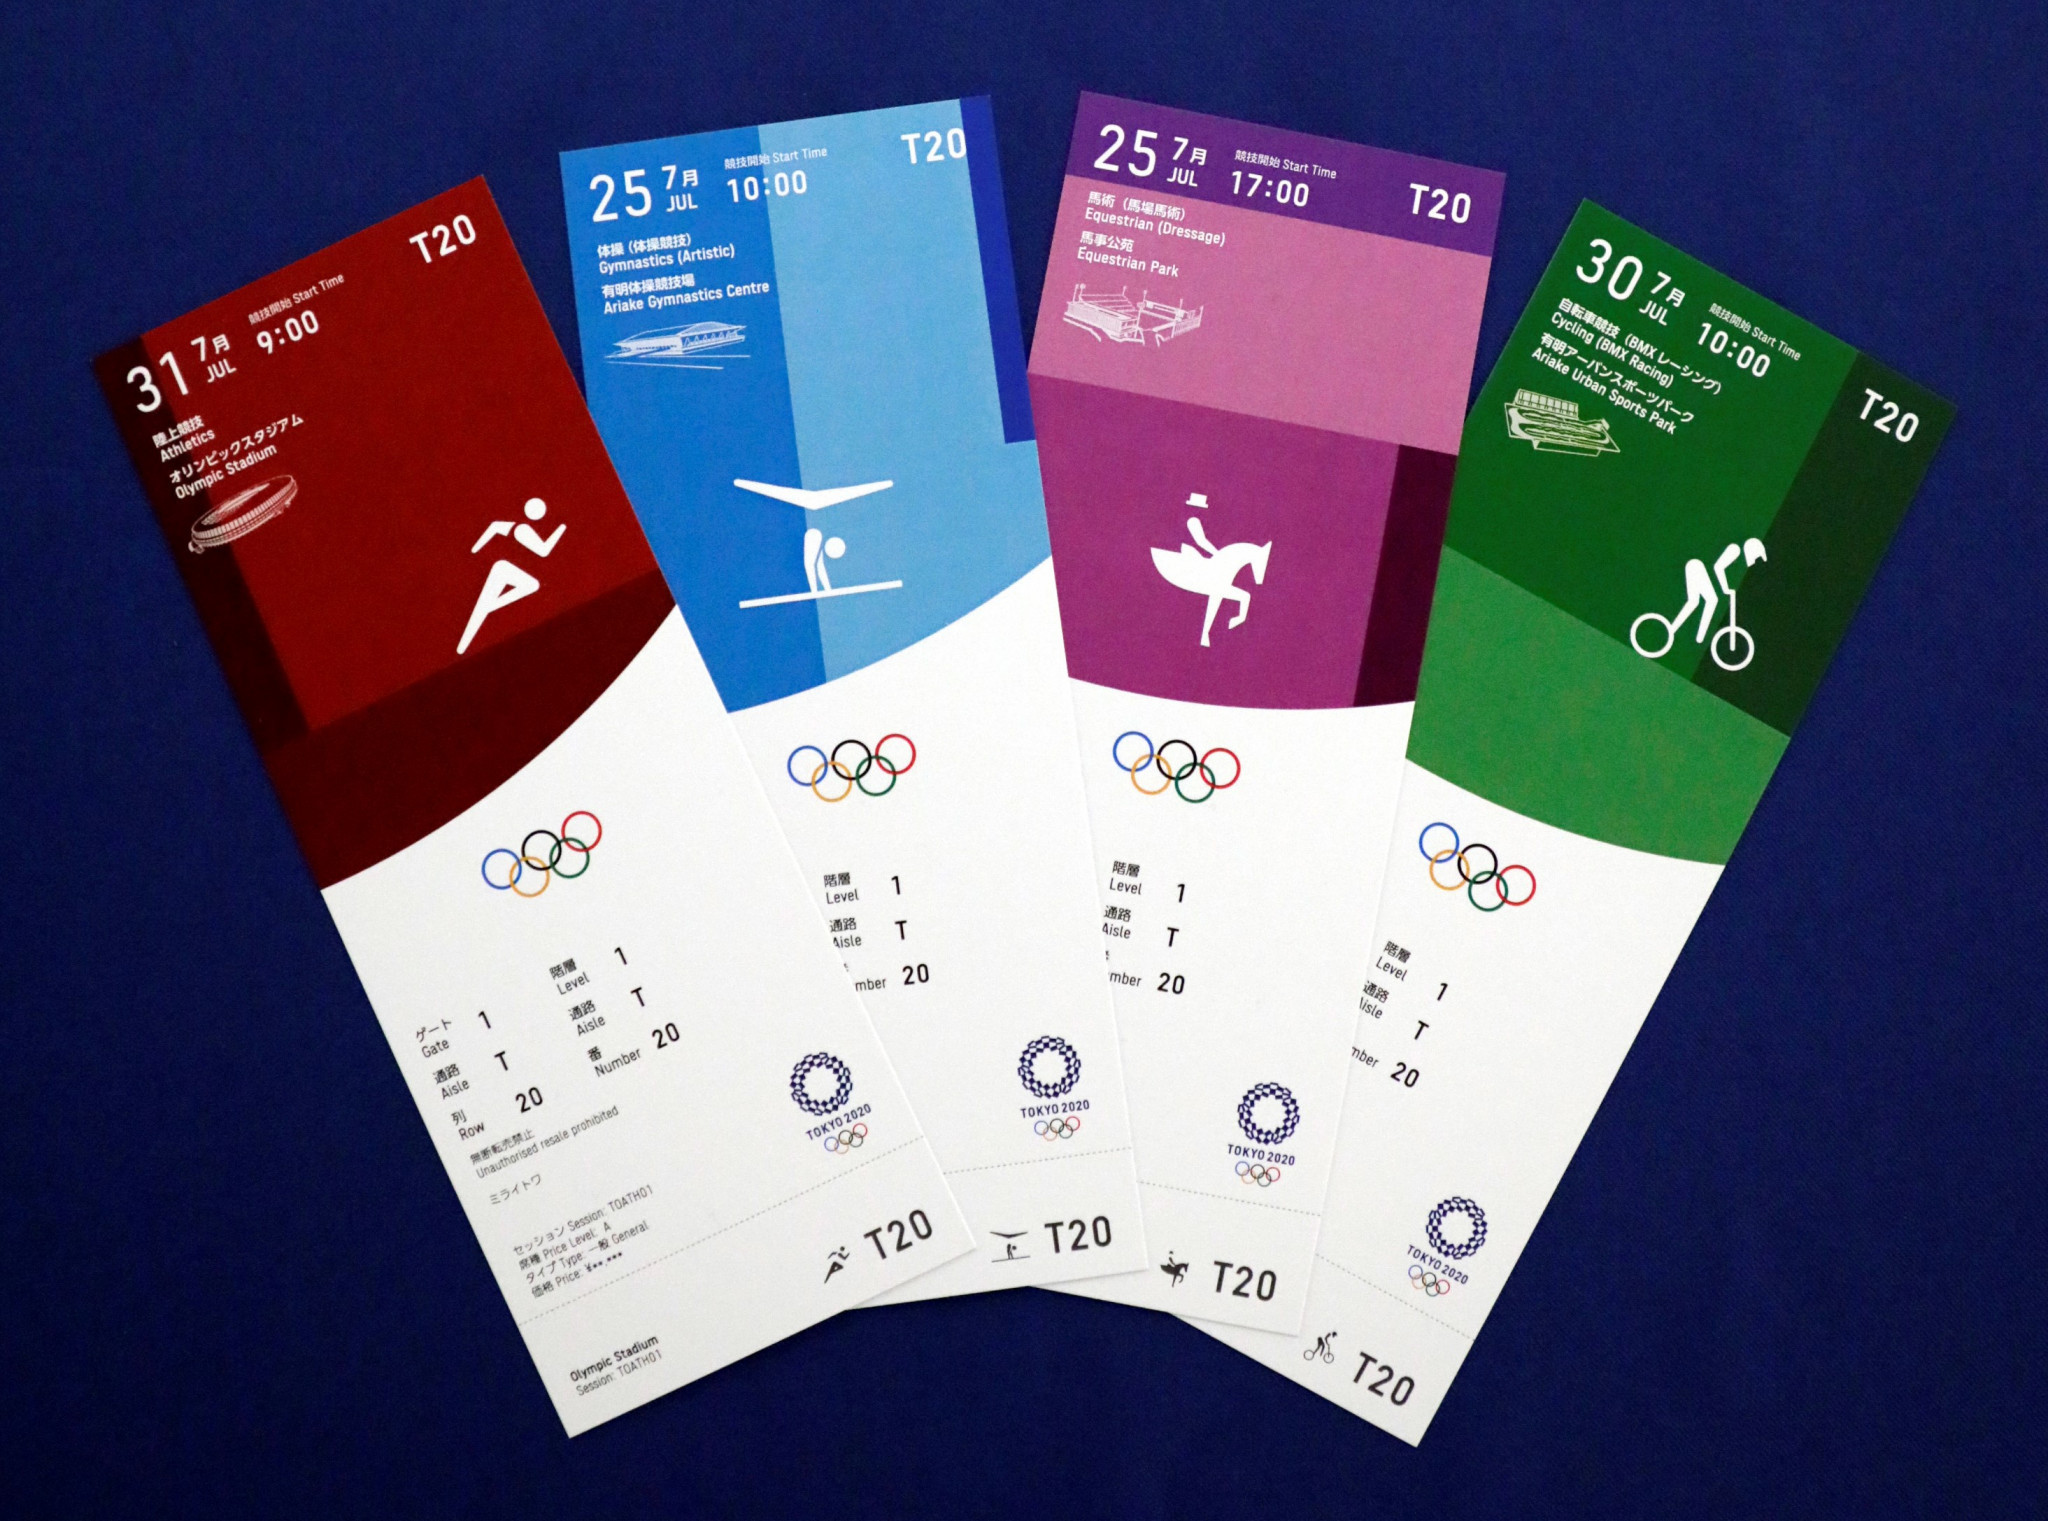 Postcard lottery for Tokyo 2020 tickets opens in Japan